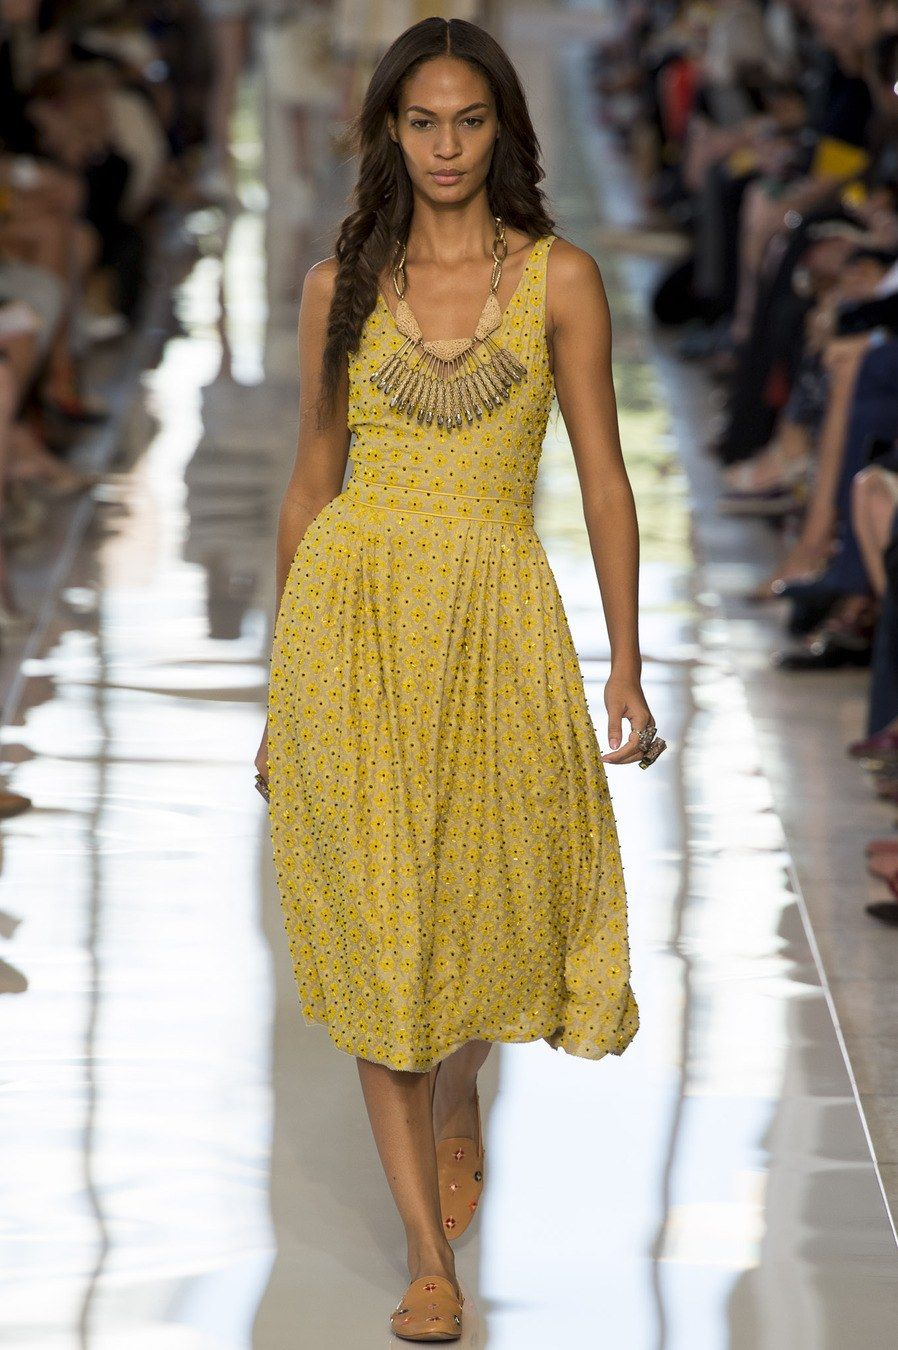 Tory Burch Spring 2013 Ready-to-Wear Fashion Show - Joan Smalls